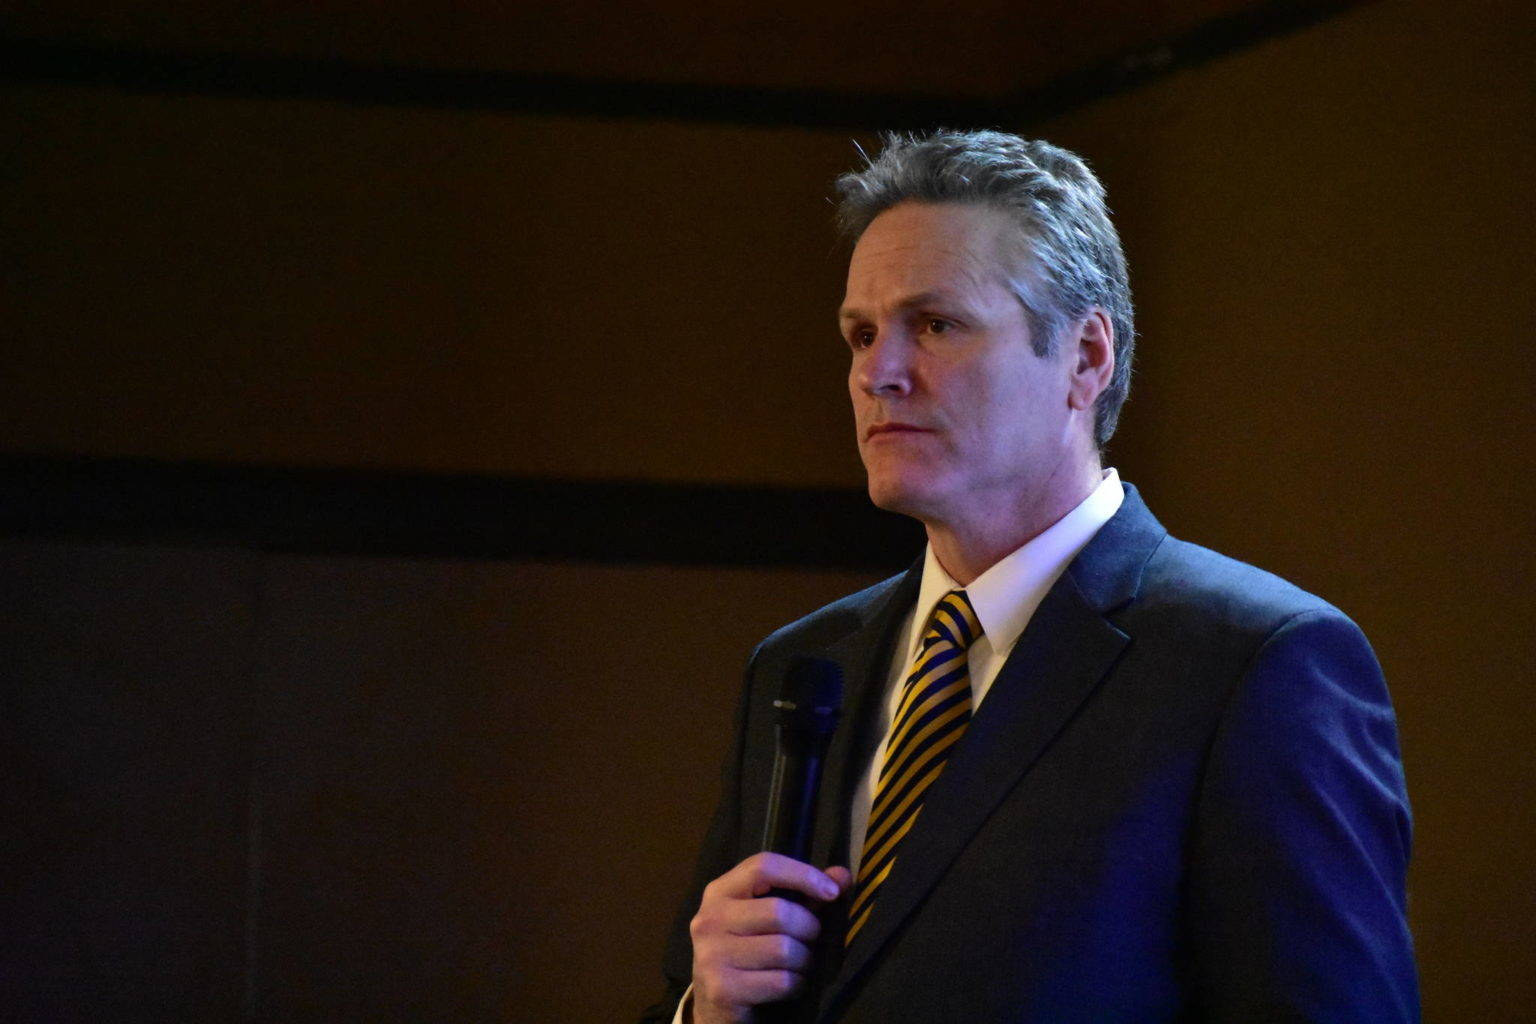 Gov. Mike Dunleavy addresses the public during a virtual town hall on Sept. 15, 2020 in Alaska. Dunleavy went into self-quarantine Monday following news a close contact had tested positive for COVID-19. (Courtesy Photo / Office of the Governor)